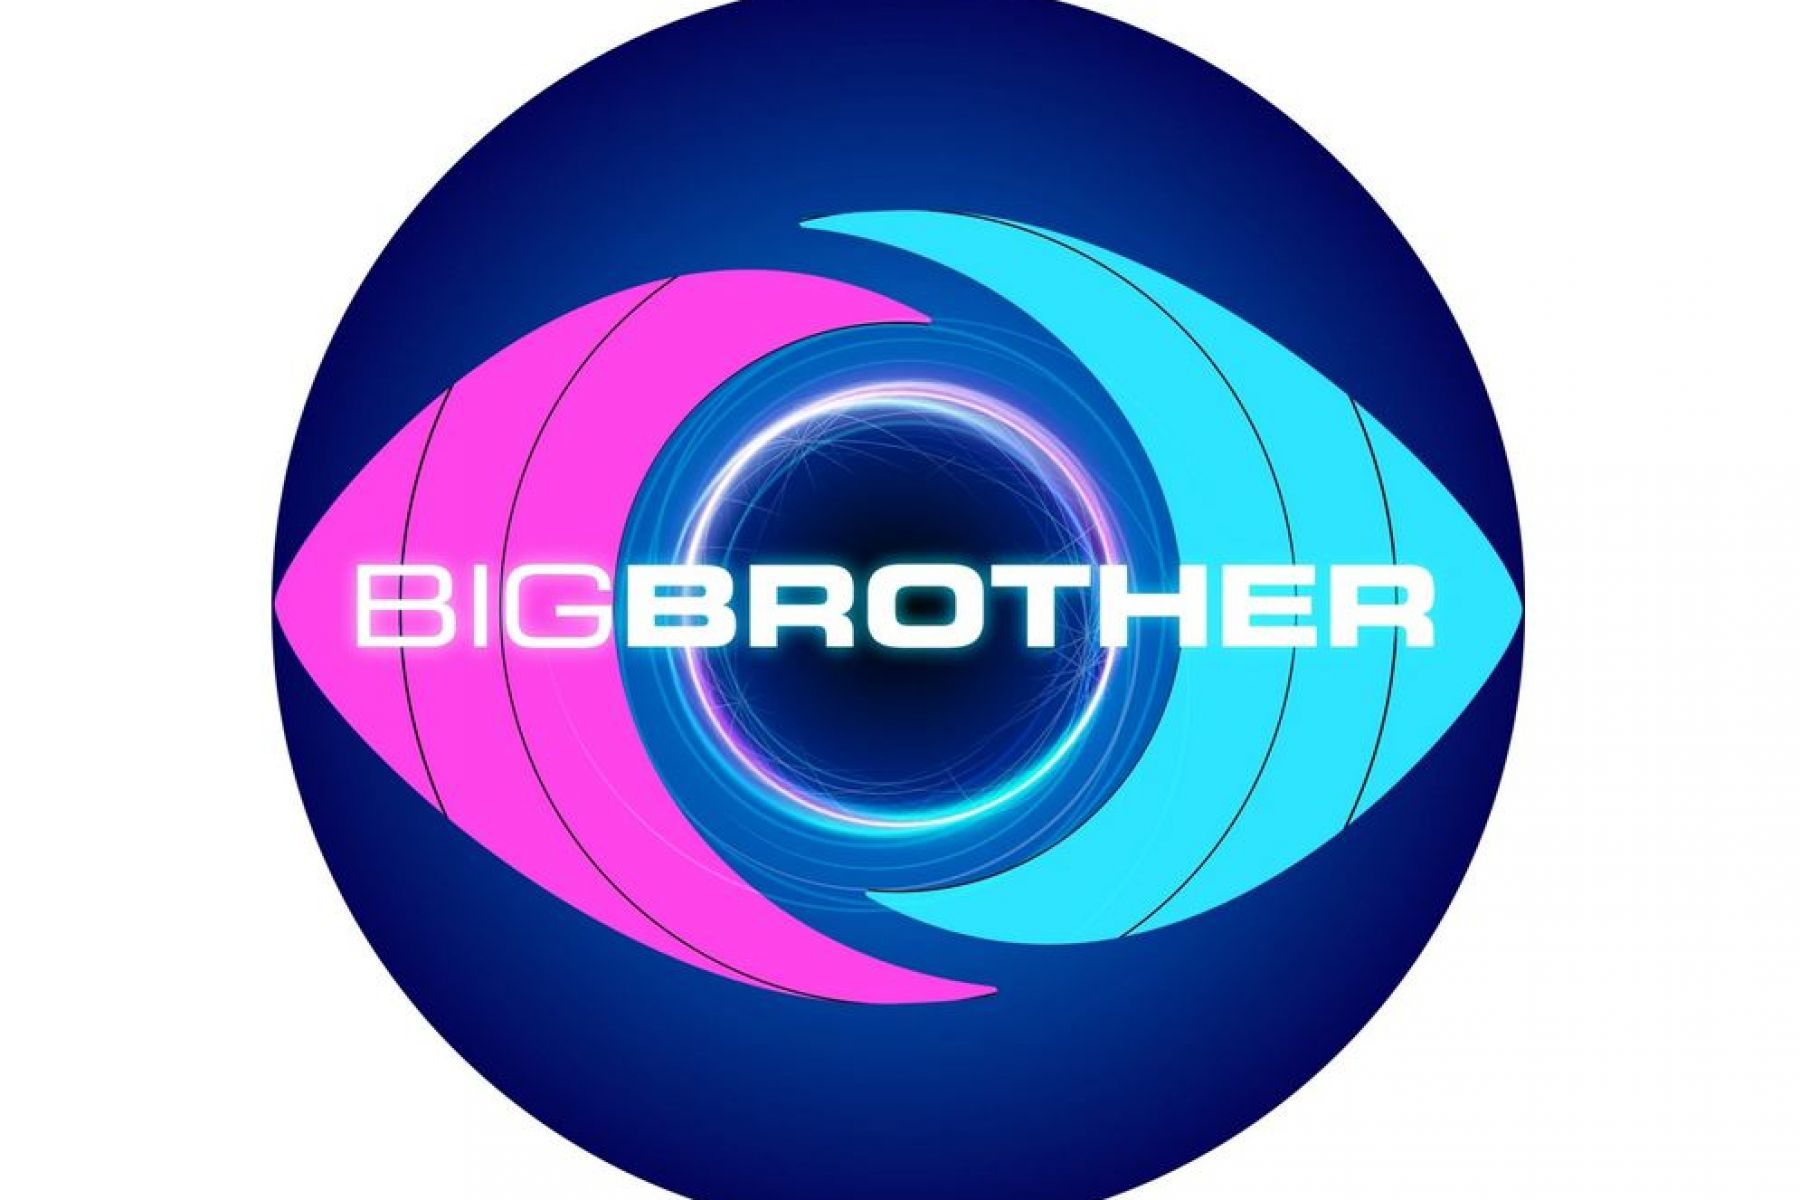 Www.Bigbrother.De 2021